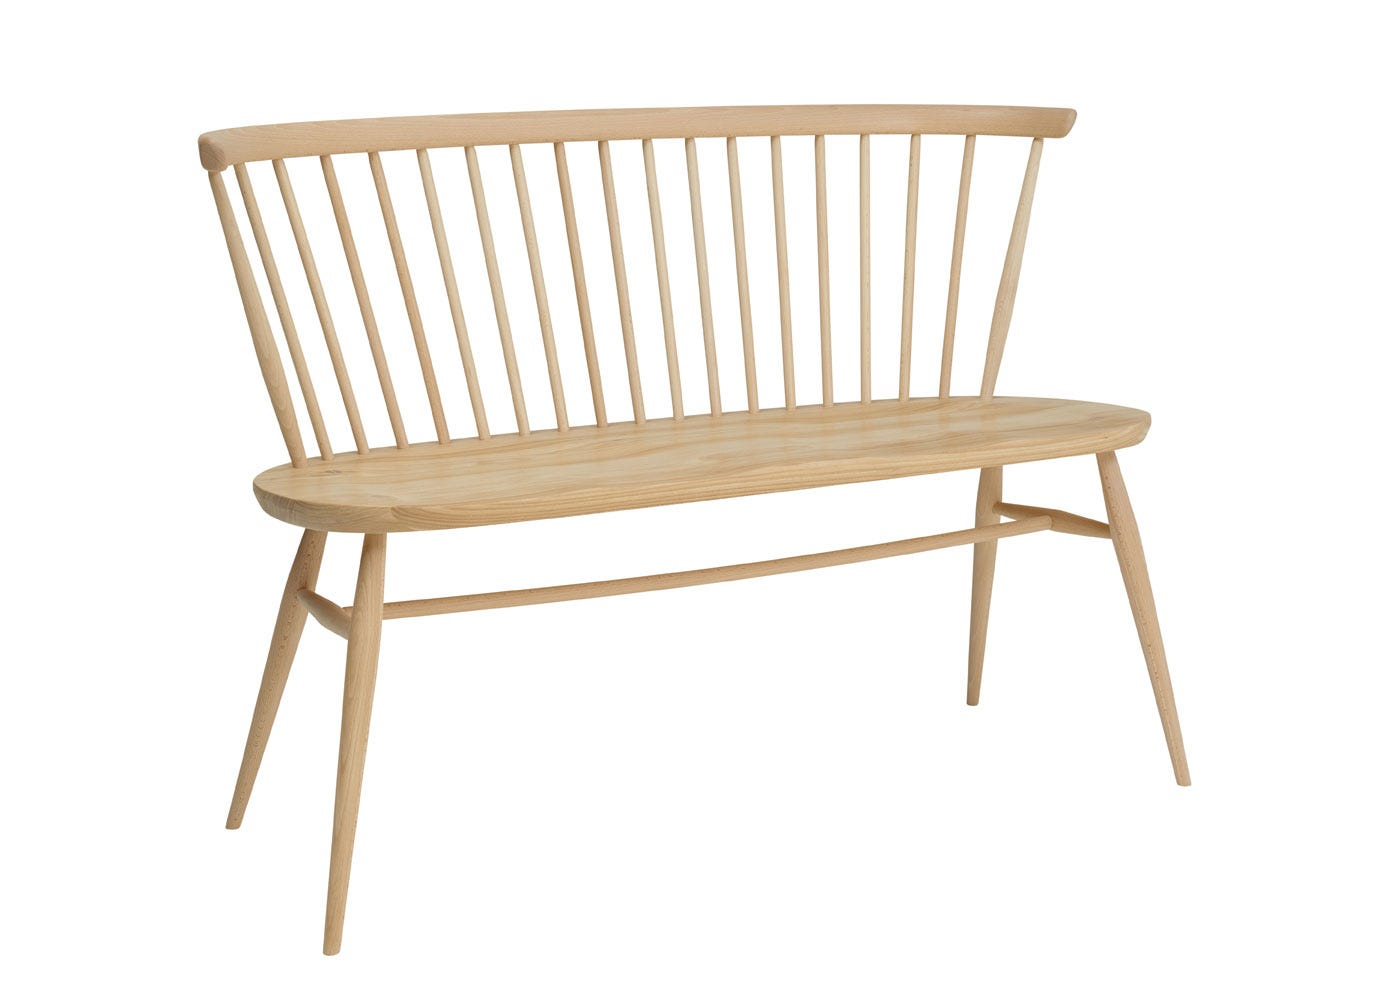 As shown: Originals Loveseat Beech and Elm - Side Profile.